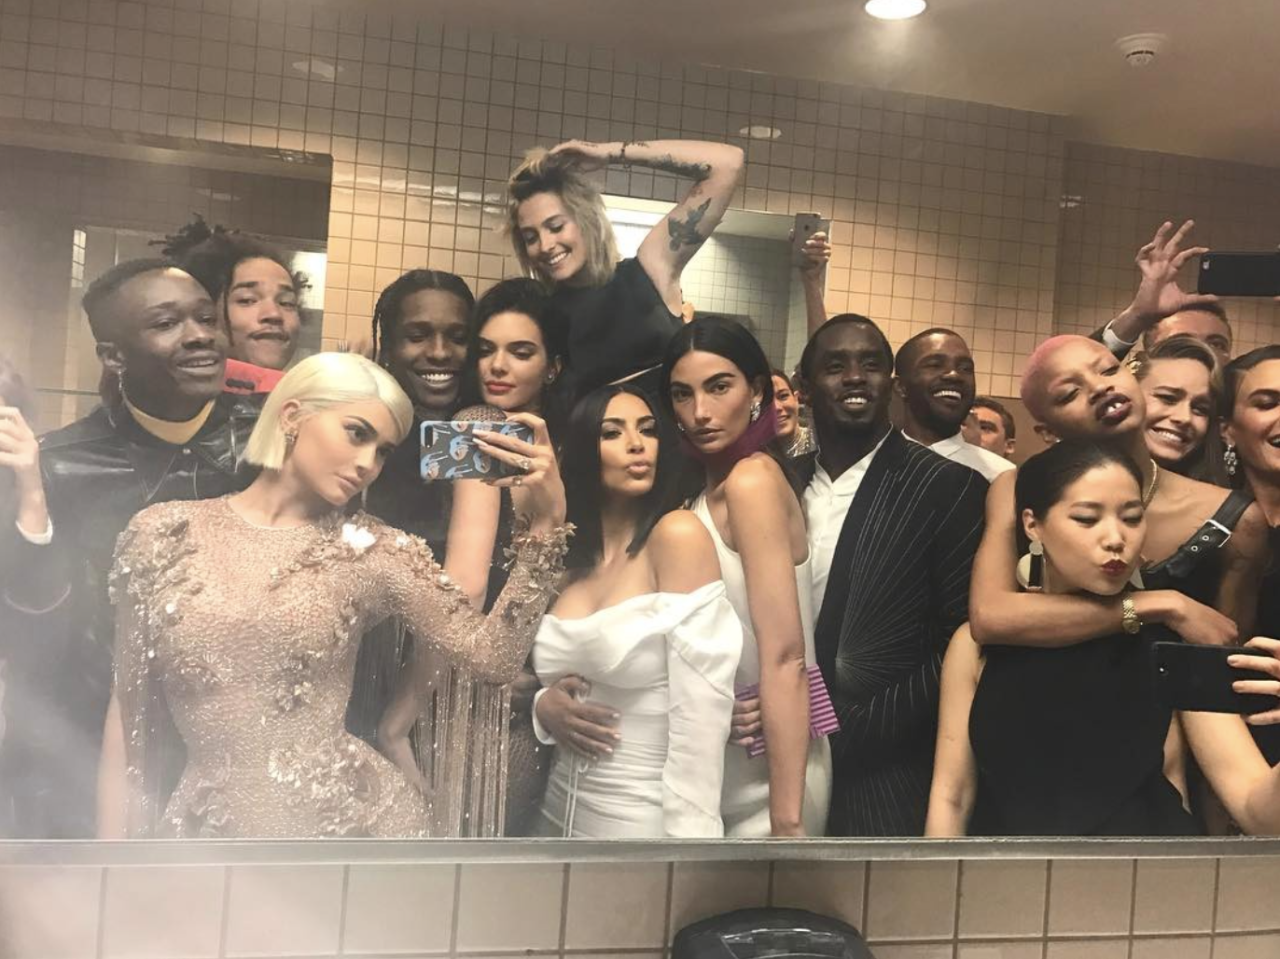 <p>Obviously it was down to Instagram Queen, Kylie Jenner to take the snap of the year, posting this absolutely epic toilet selfie on her Instagram. [Photo: Kylie Jenner/ Instagram] </p>